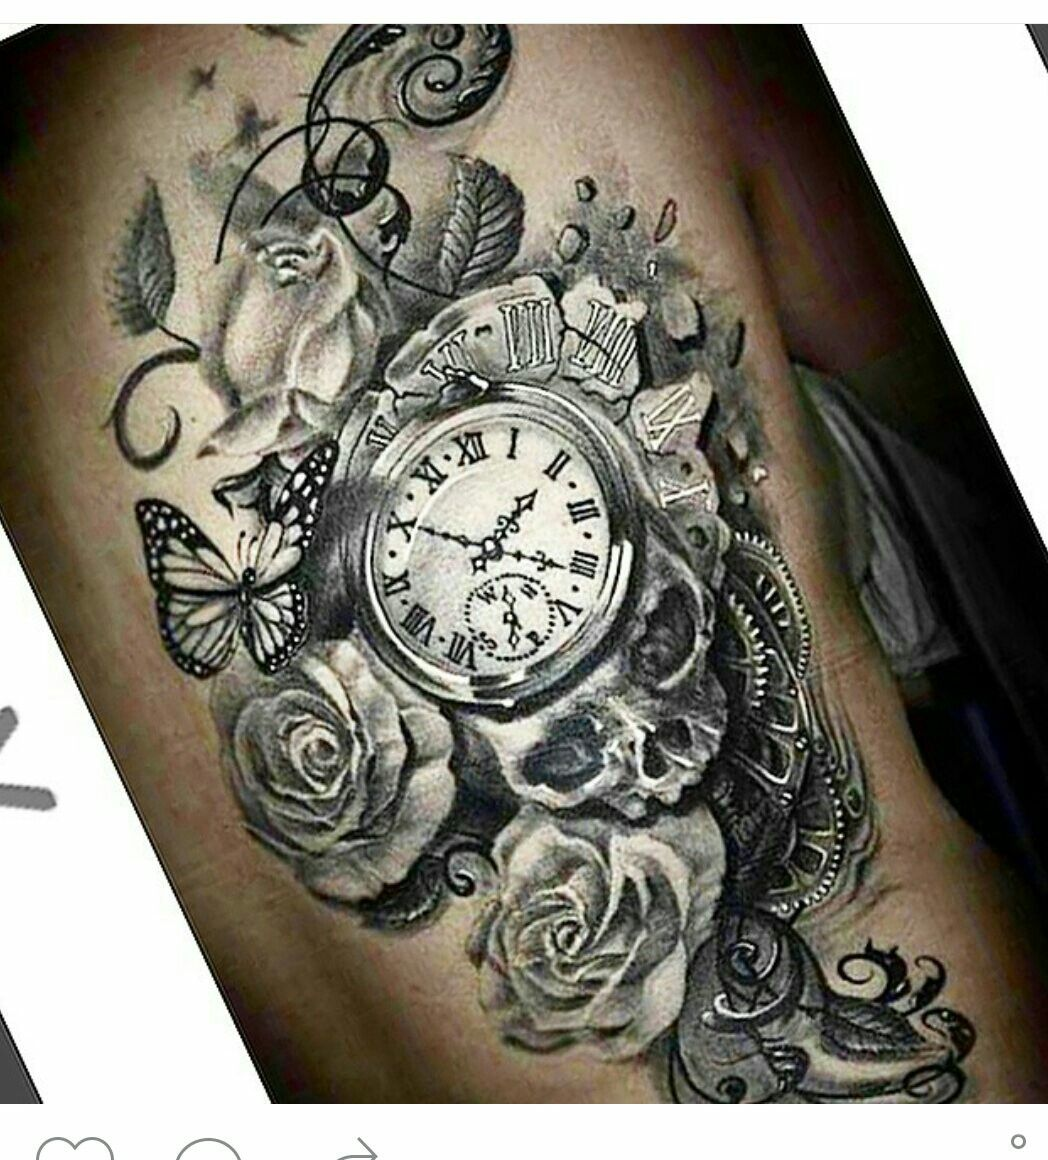 Gonna get this tattoo ideas i love pinterest - Montre a gousset tattoo ...